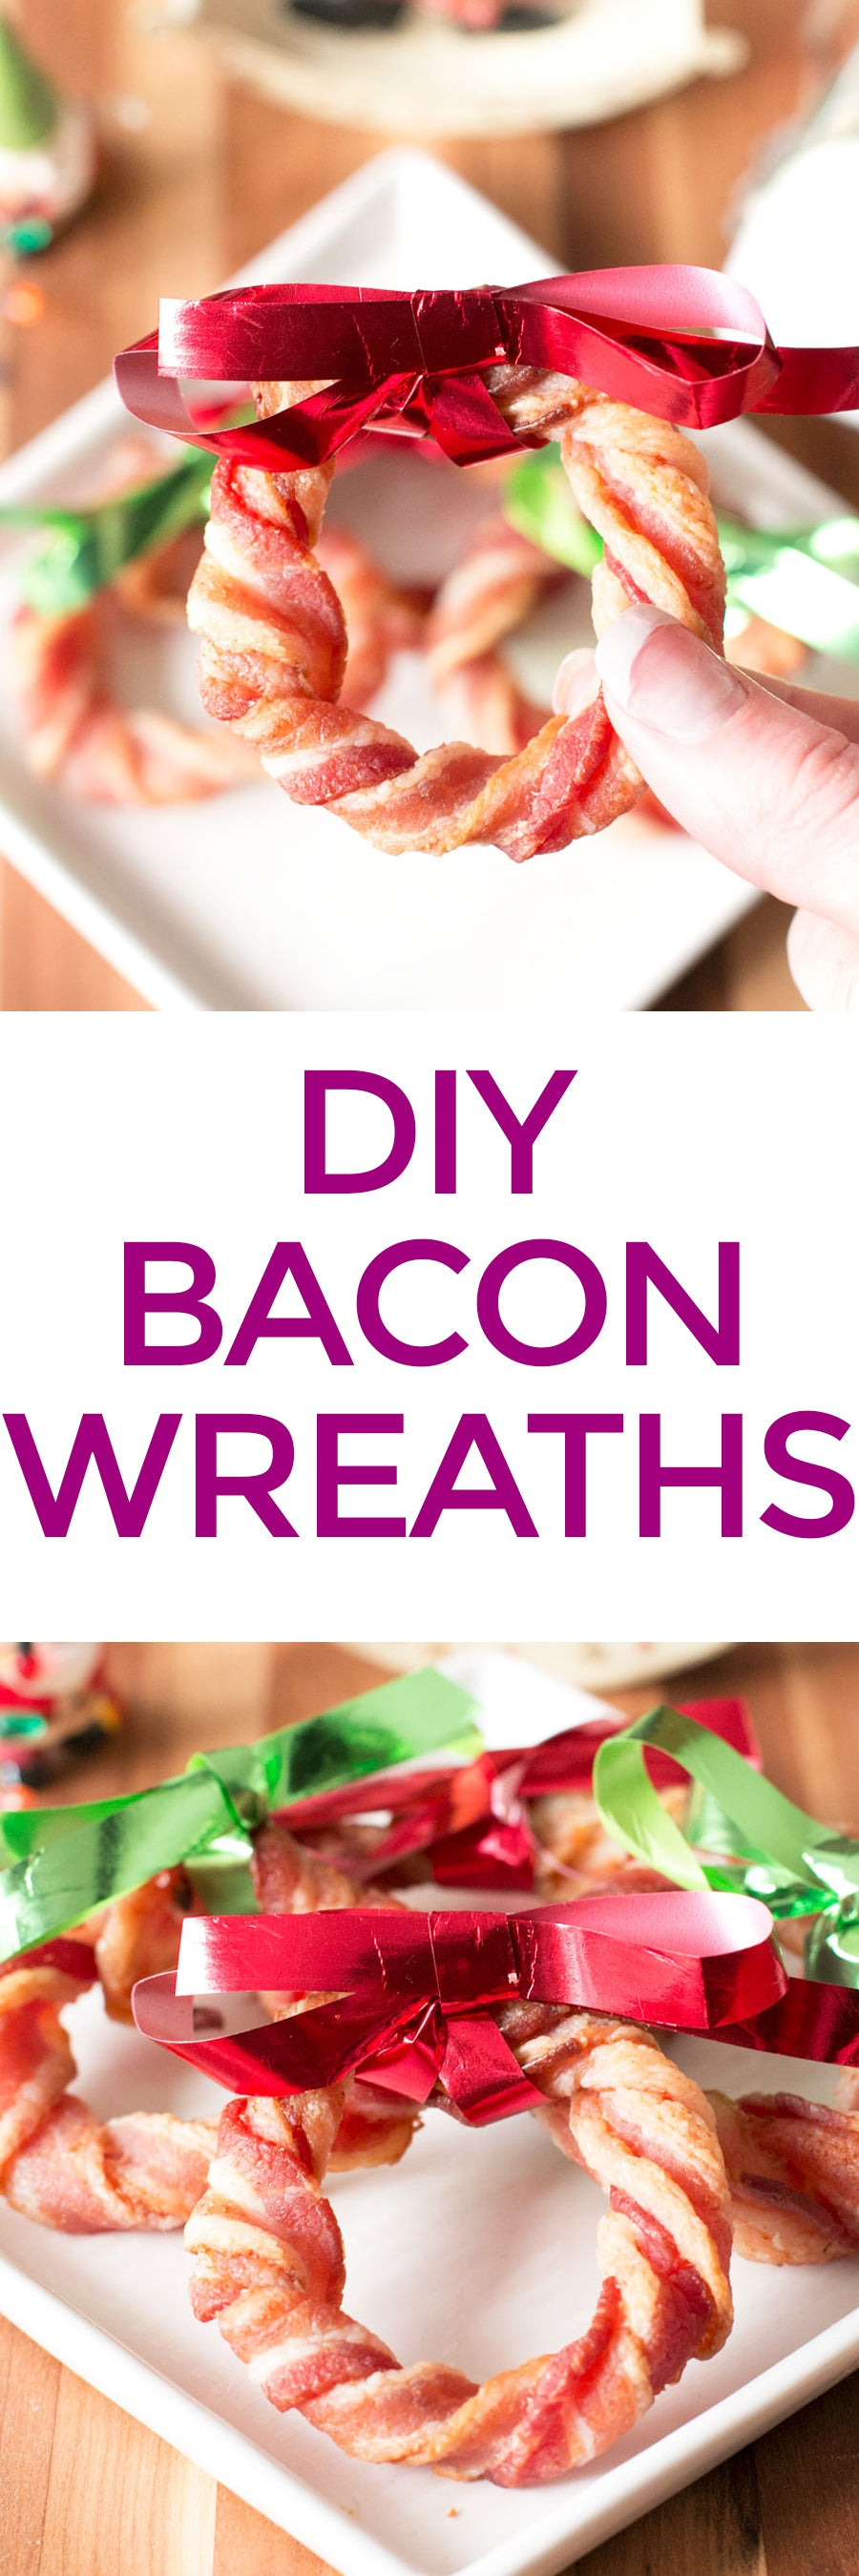 DIY Bacon Wreaths | pigofthemonth.com #christmas #bacon #recipe #DIY